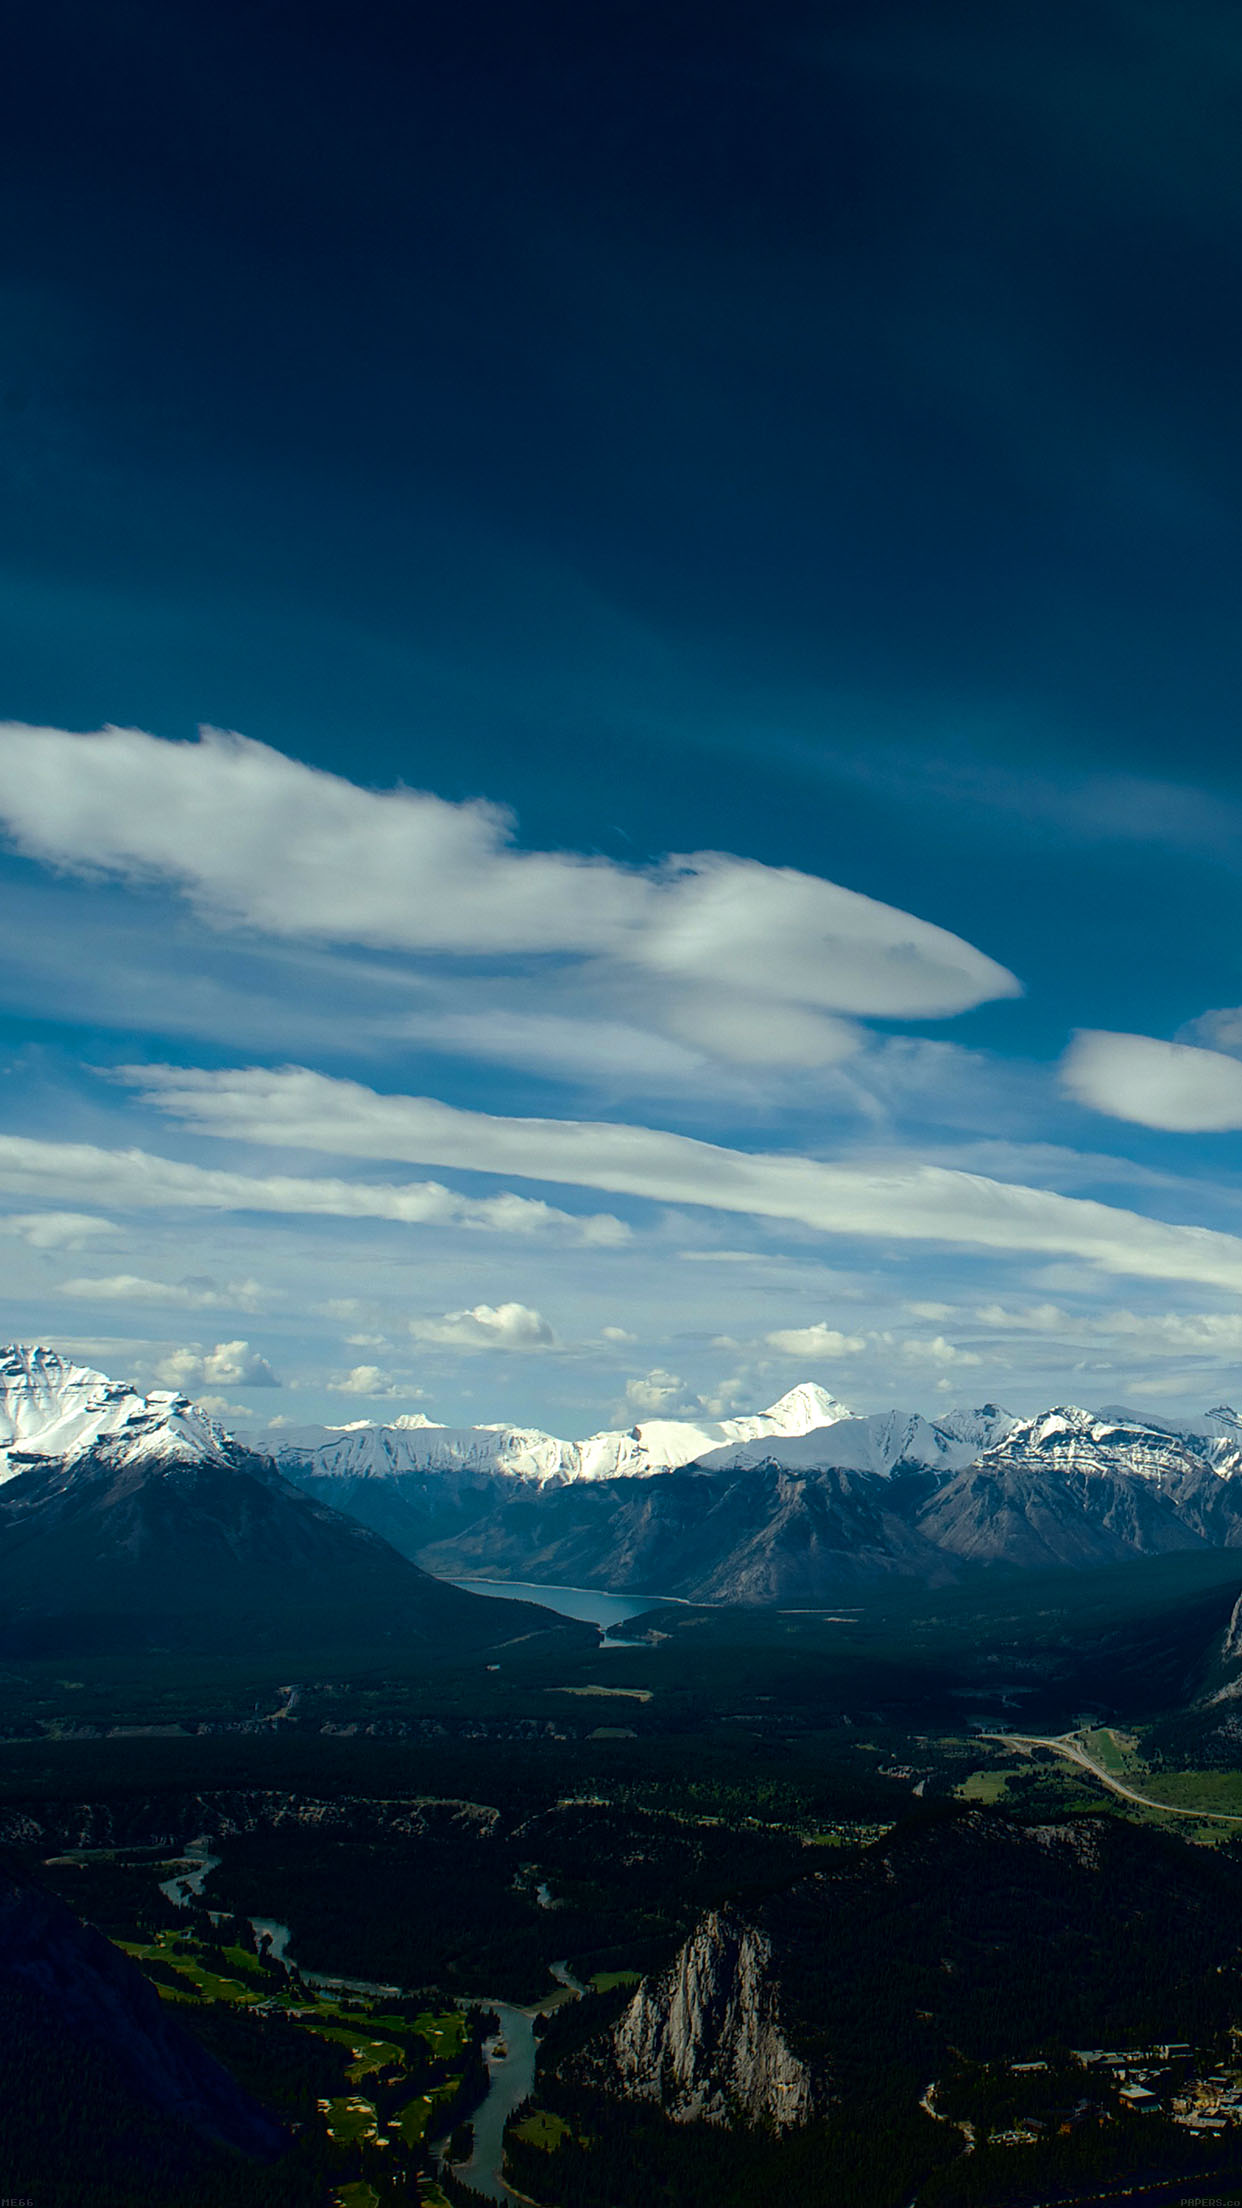 Canada Mountain Sky Snow High Nature Android wallpaper